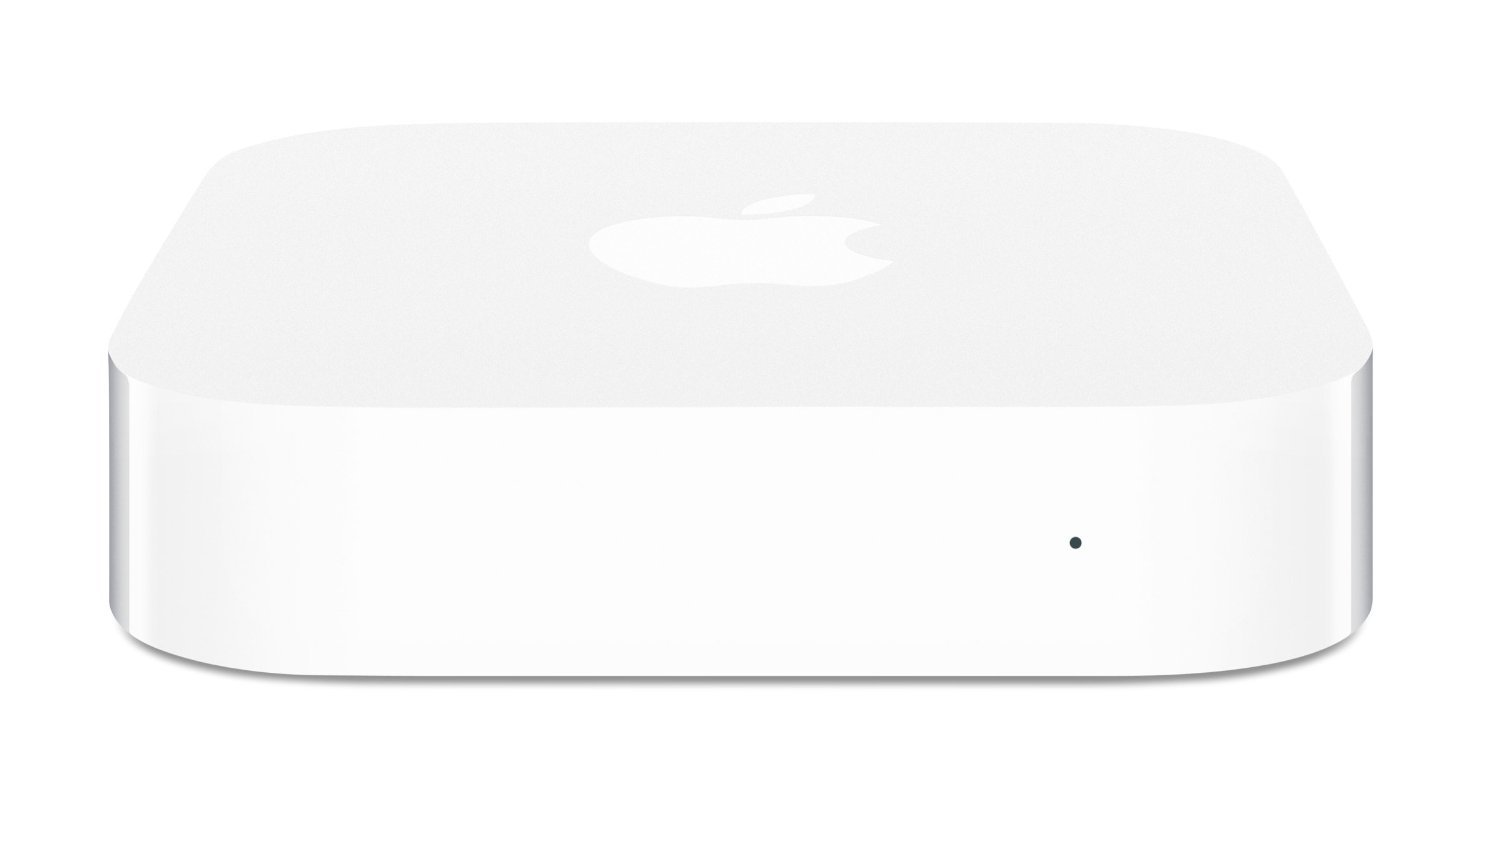 Apple AirPort Express Base Station MC414 Wireless Router (Renewed) by Apple